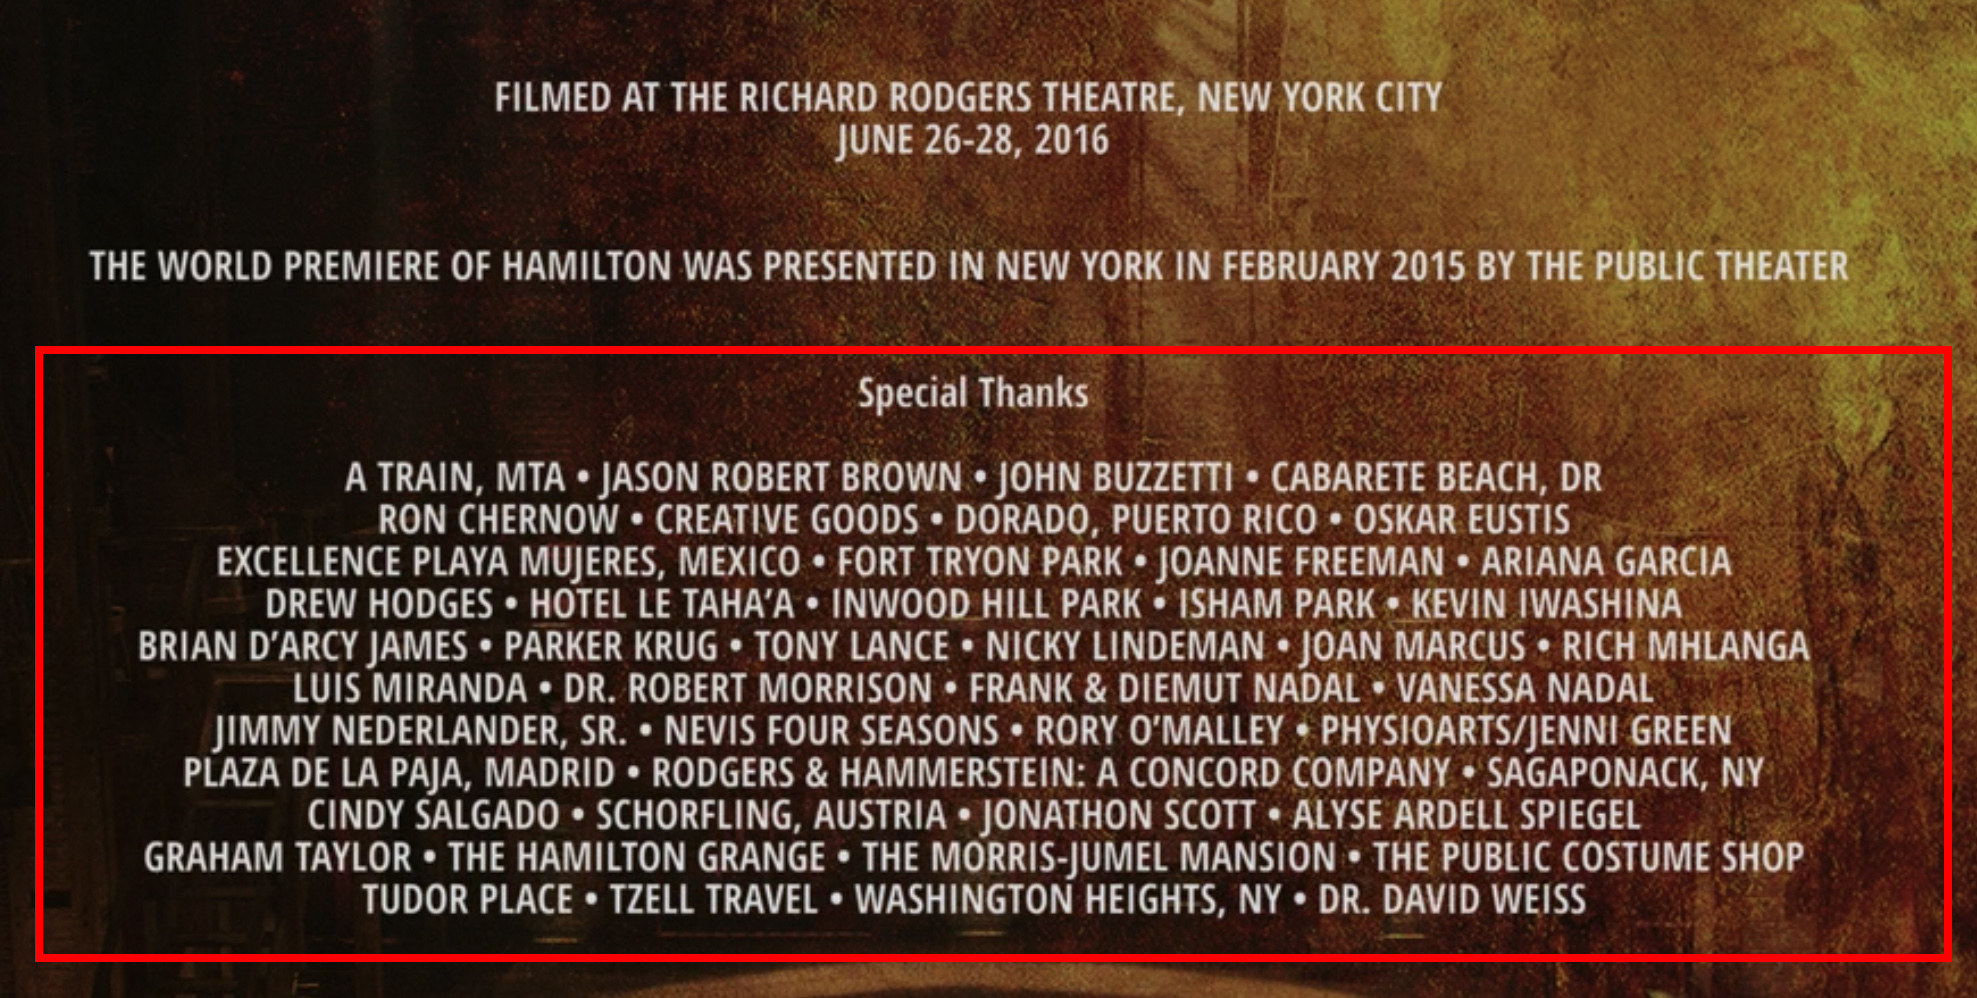 The Special Thanks section at the end of the credits that lists various places